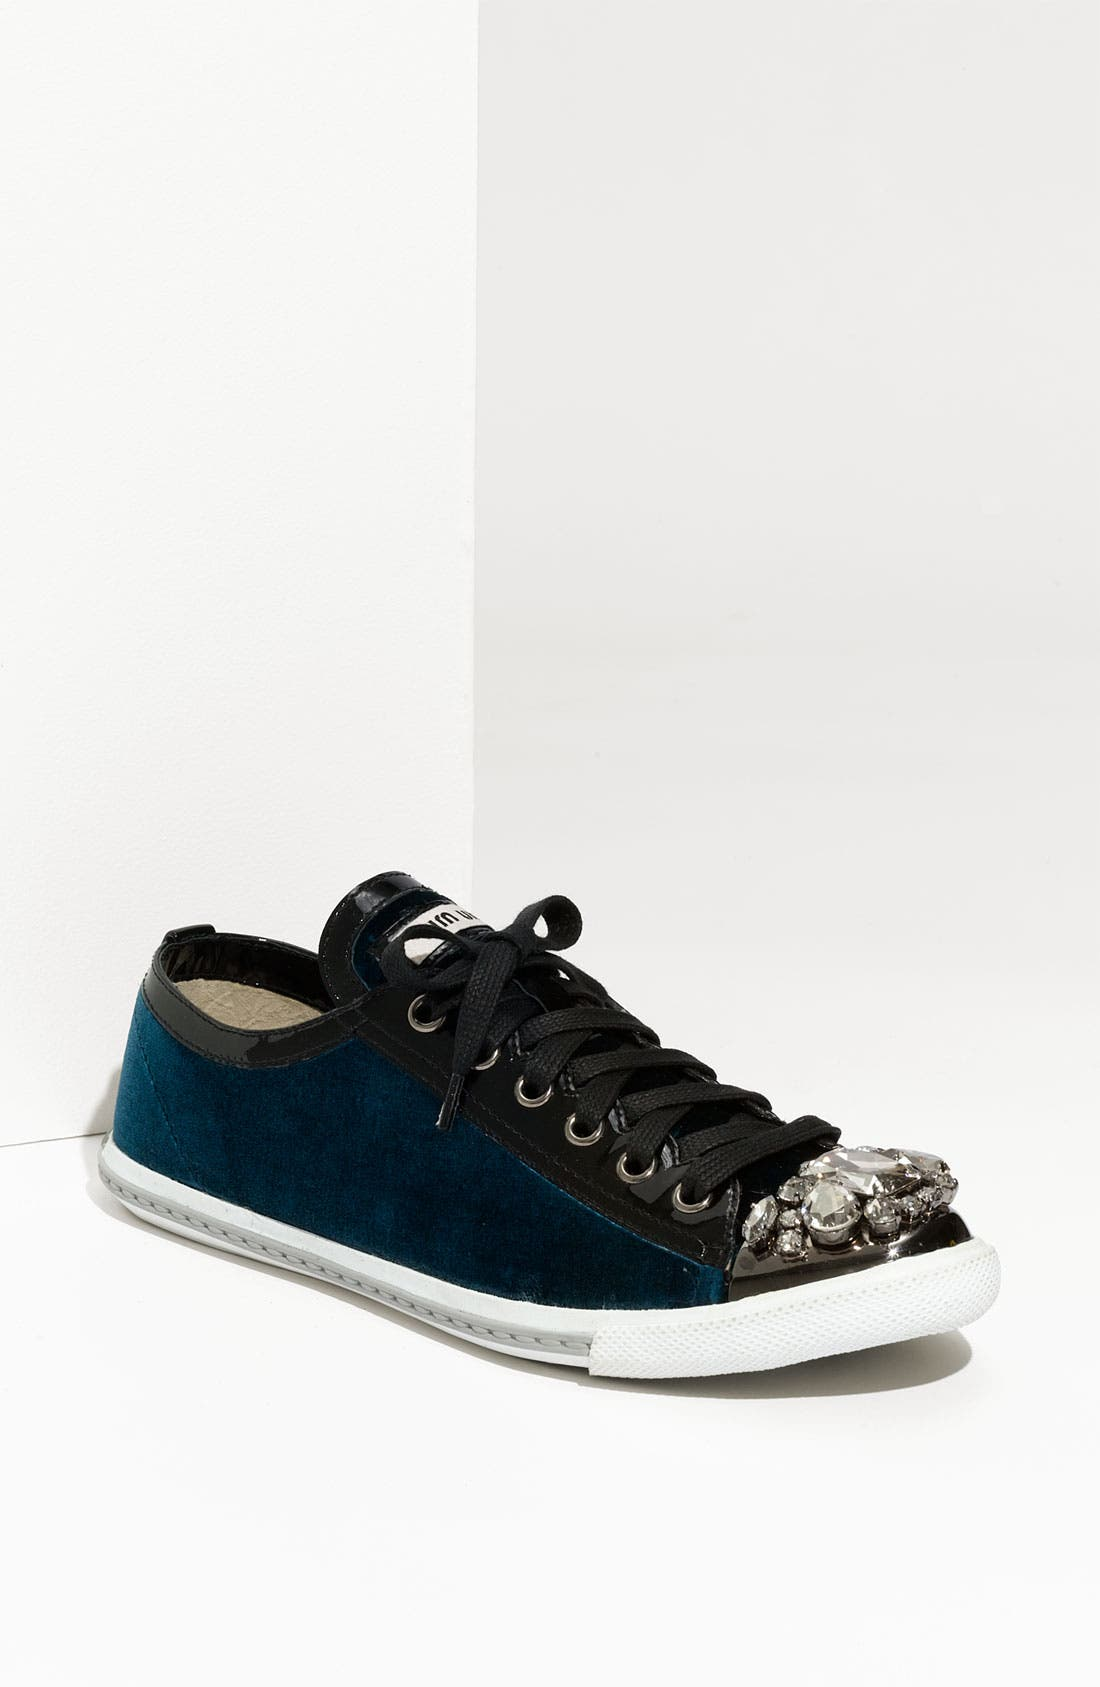 Alternate Image 1 Selected - Miu Miu Embellished Velvet Sneaker